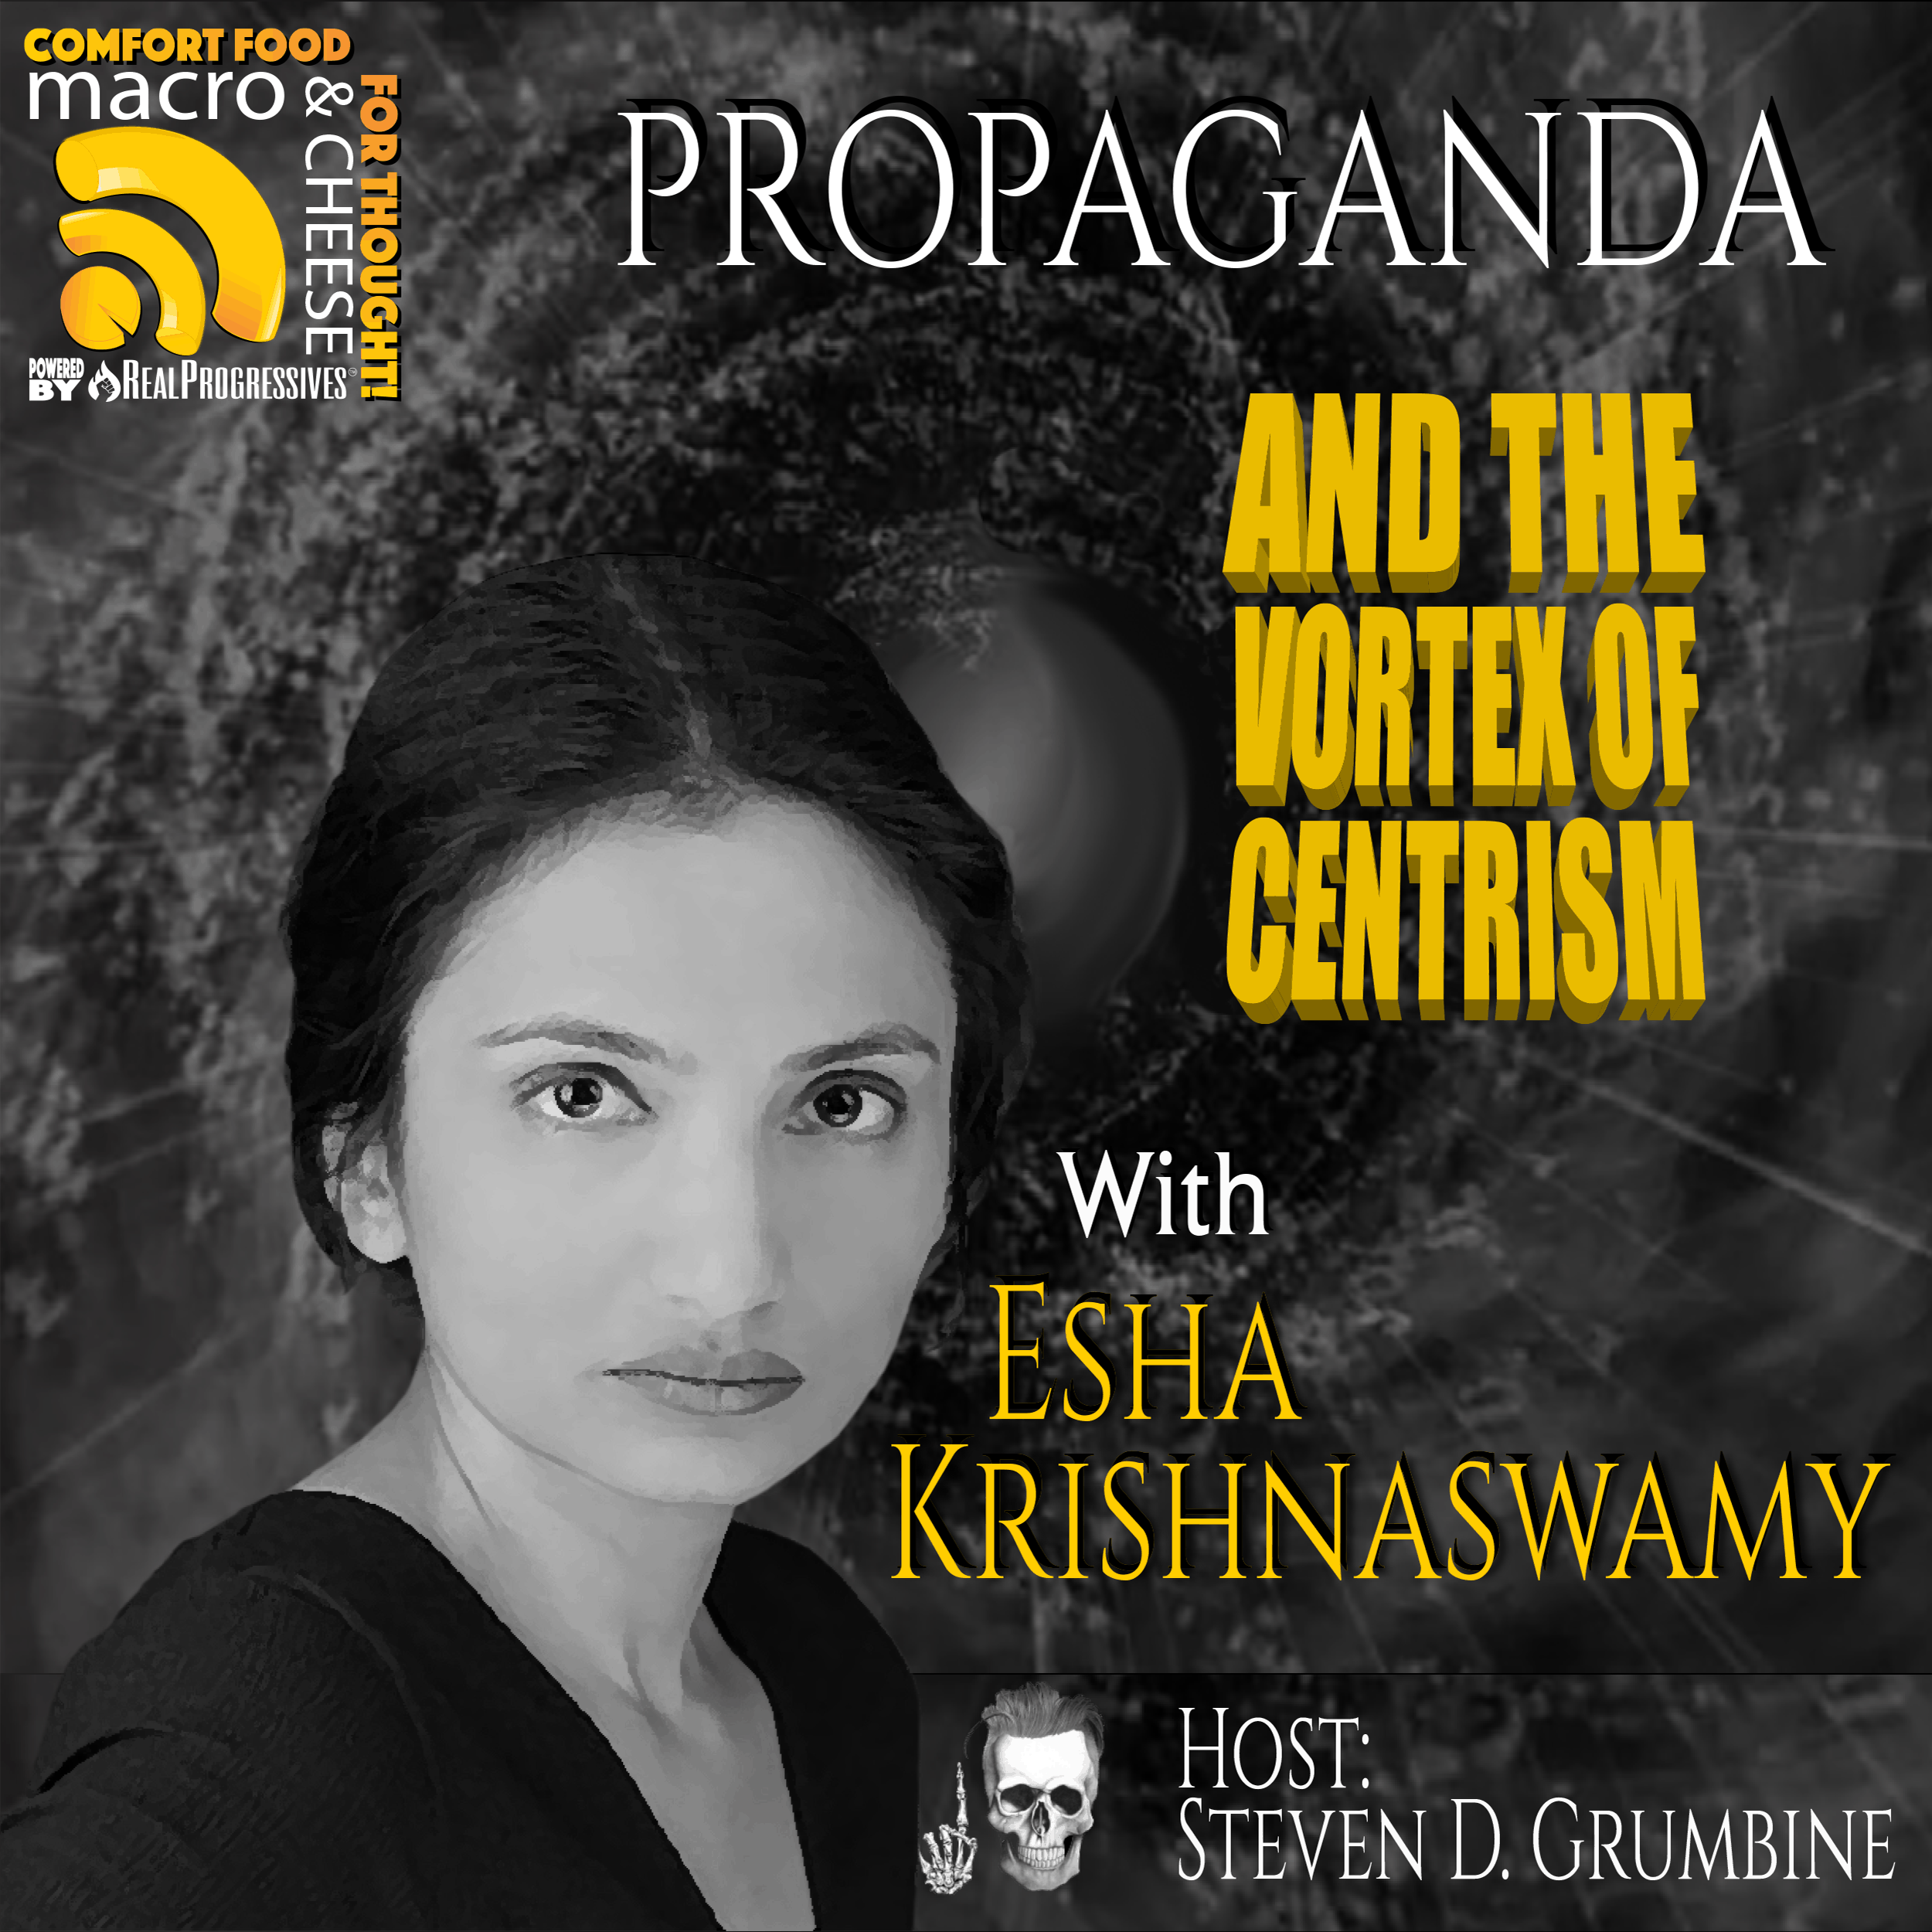 Episode 92 – Propaganda and the Vortex of Centrism with Esha Krishnaswamy